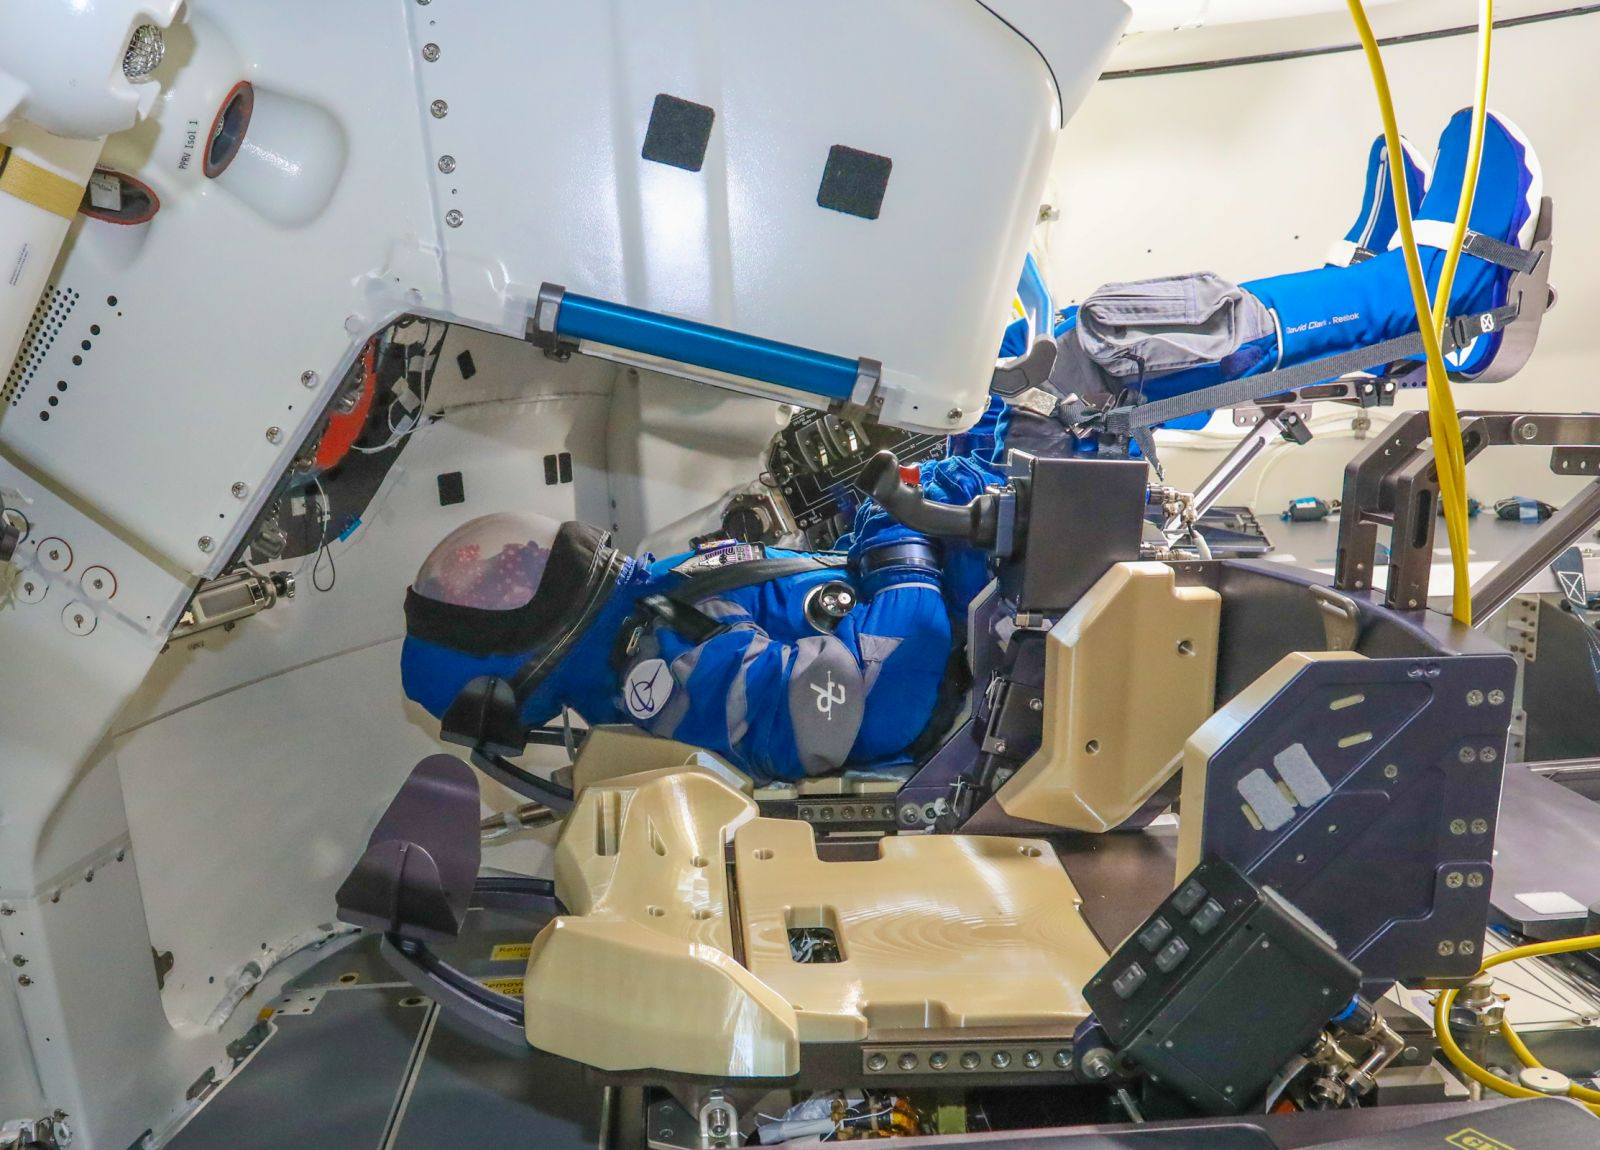 """The anthropometric test device, named """"Rosie the Rocketeer,"""" is positioned in the commander's seat for the OFT-2 mission. Credit: Boeing"""